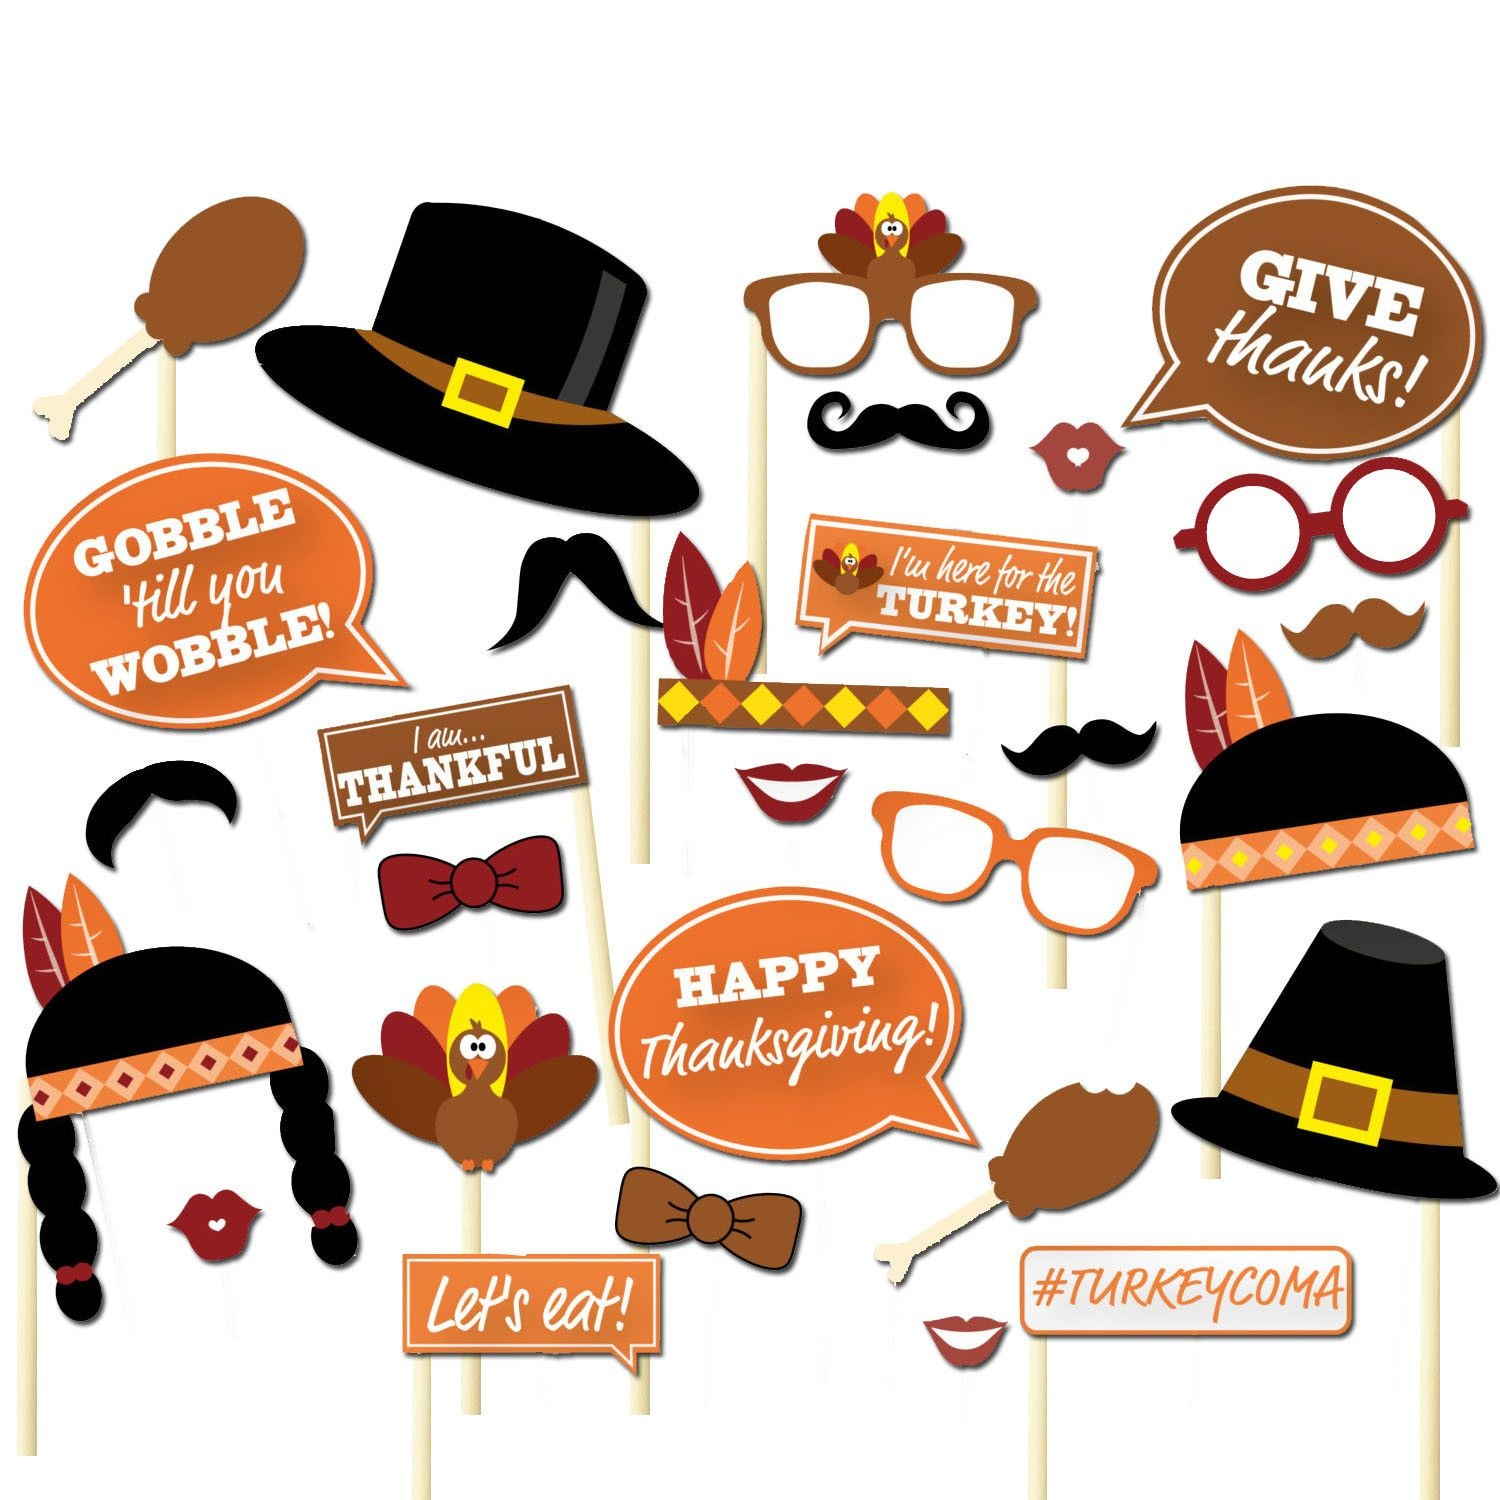 Details About 29Pcs Thanksgiving Day Party Supplies Decorations - Free Printable Thanksgiving Photo Props